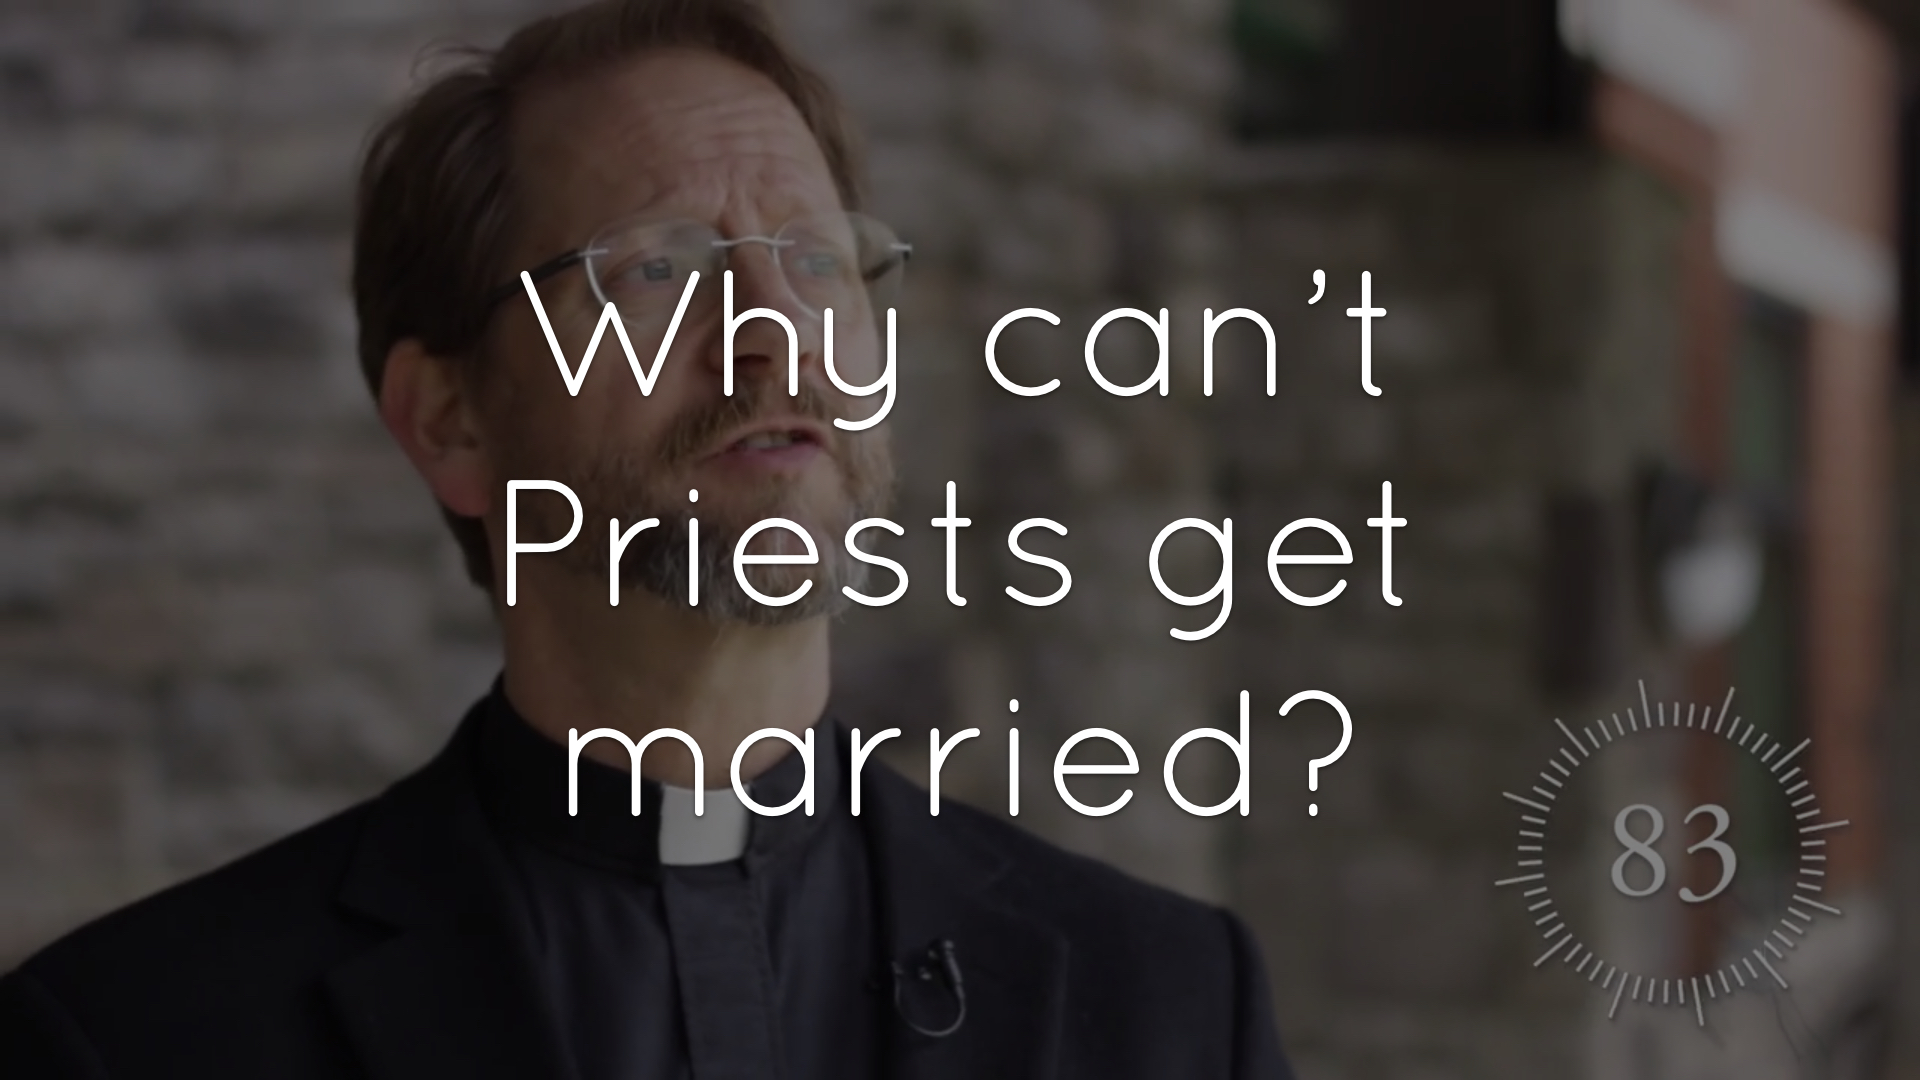 Why do priests take vows of celibacy instead of marrying?